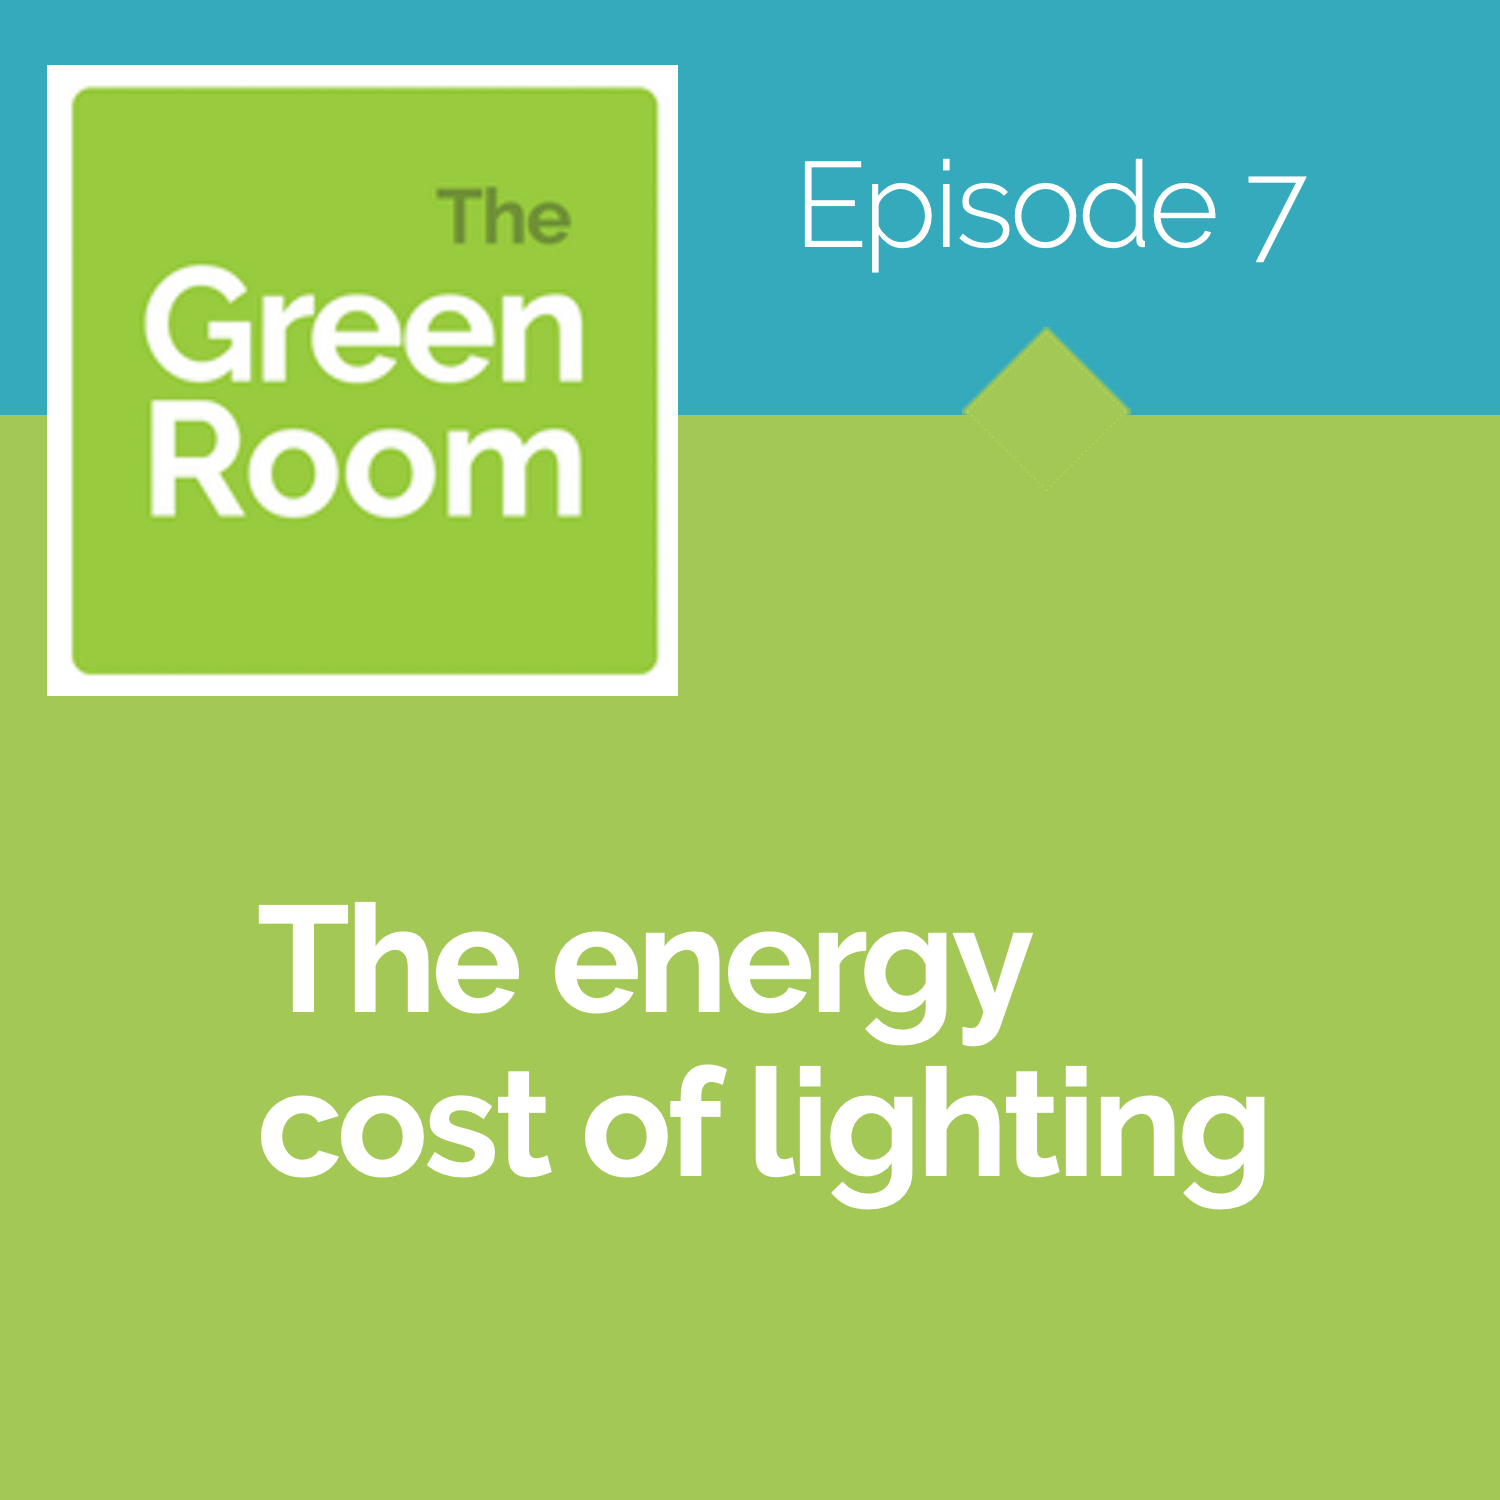 The Energy Cost of Lighting